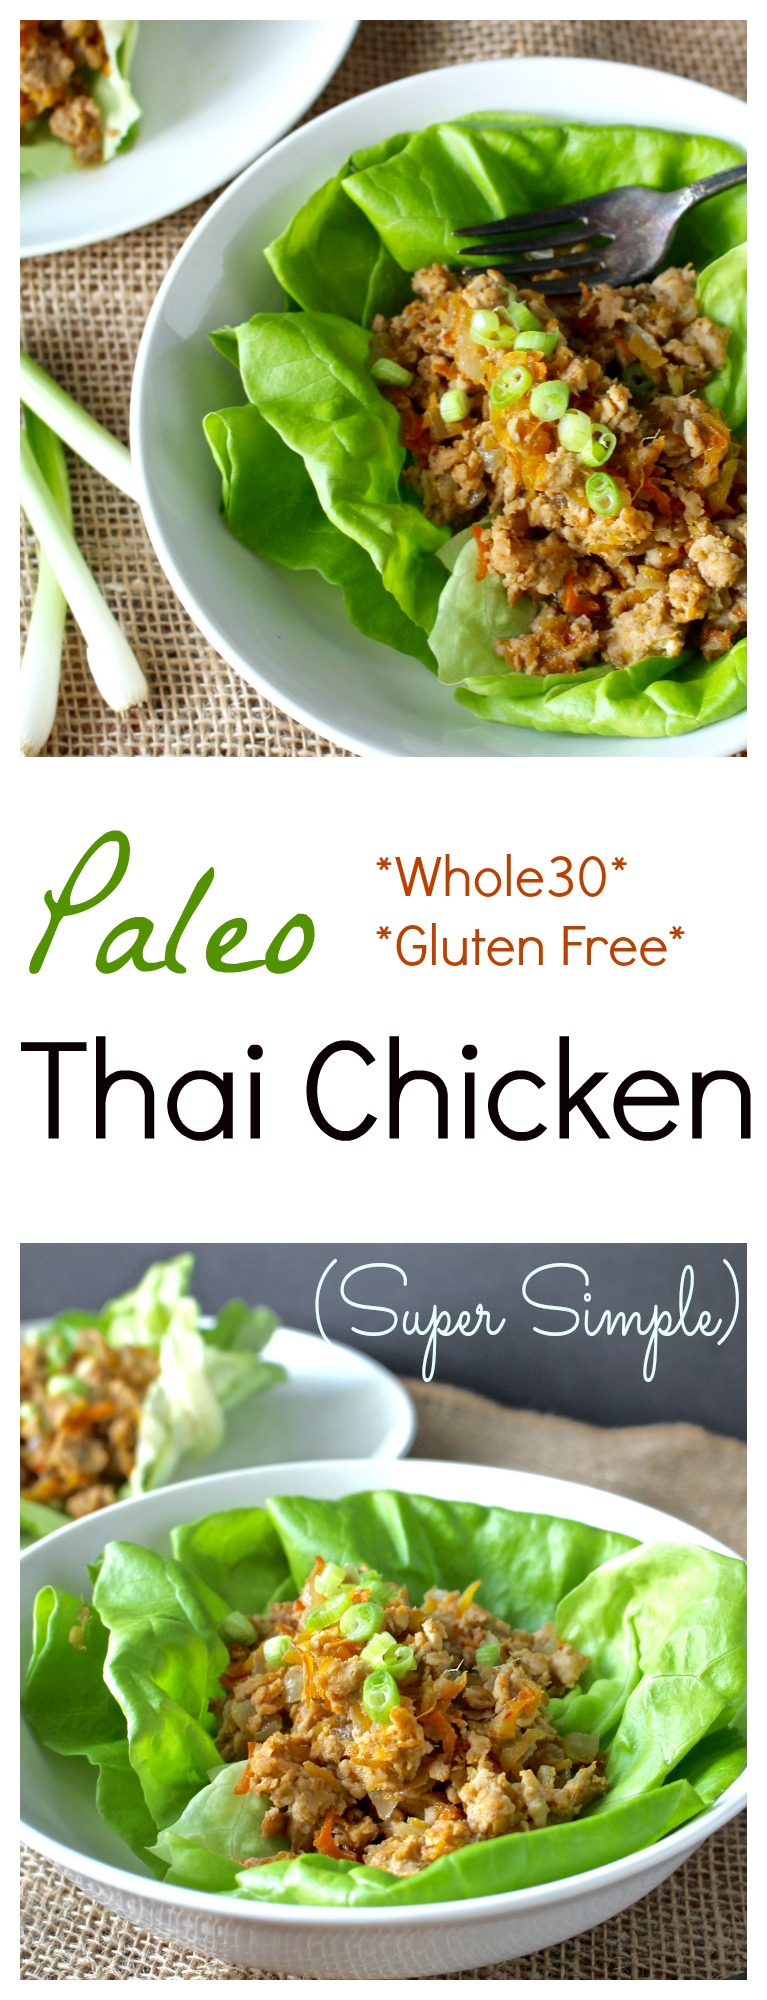 Paleo Thai Chicken- loaded with flavor, made in 20 minutes, and so easy! Whole30 and gluten free!